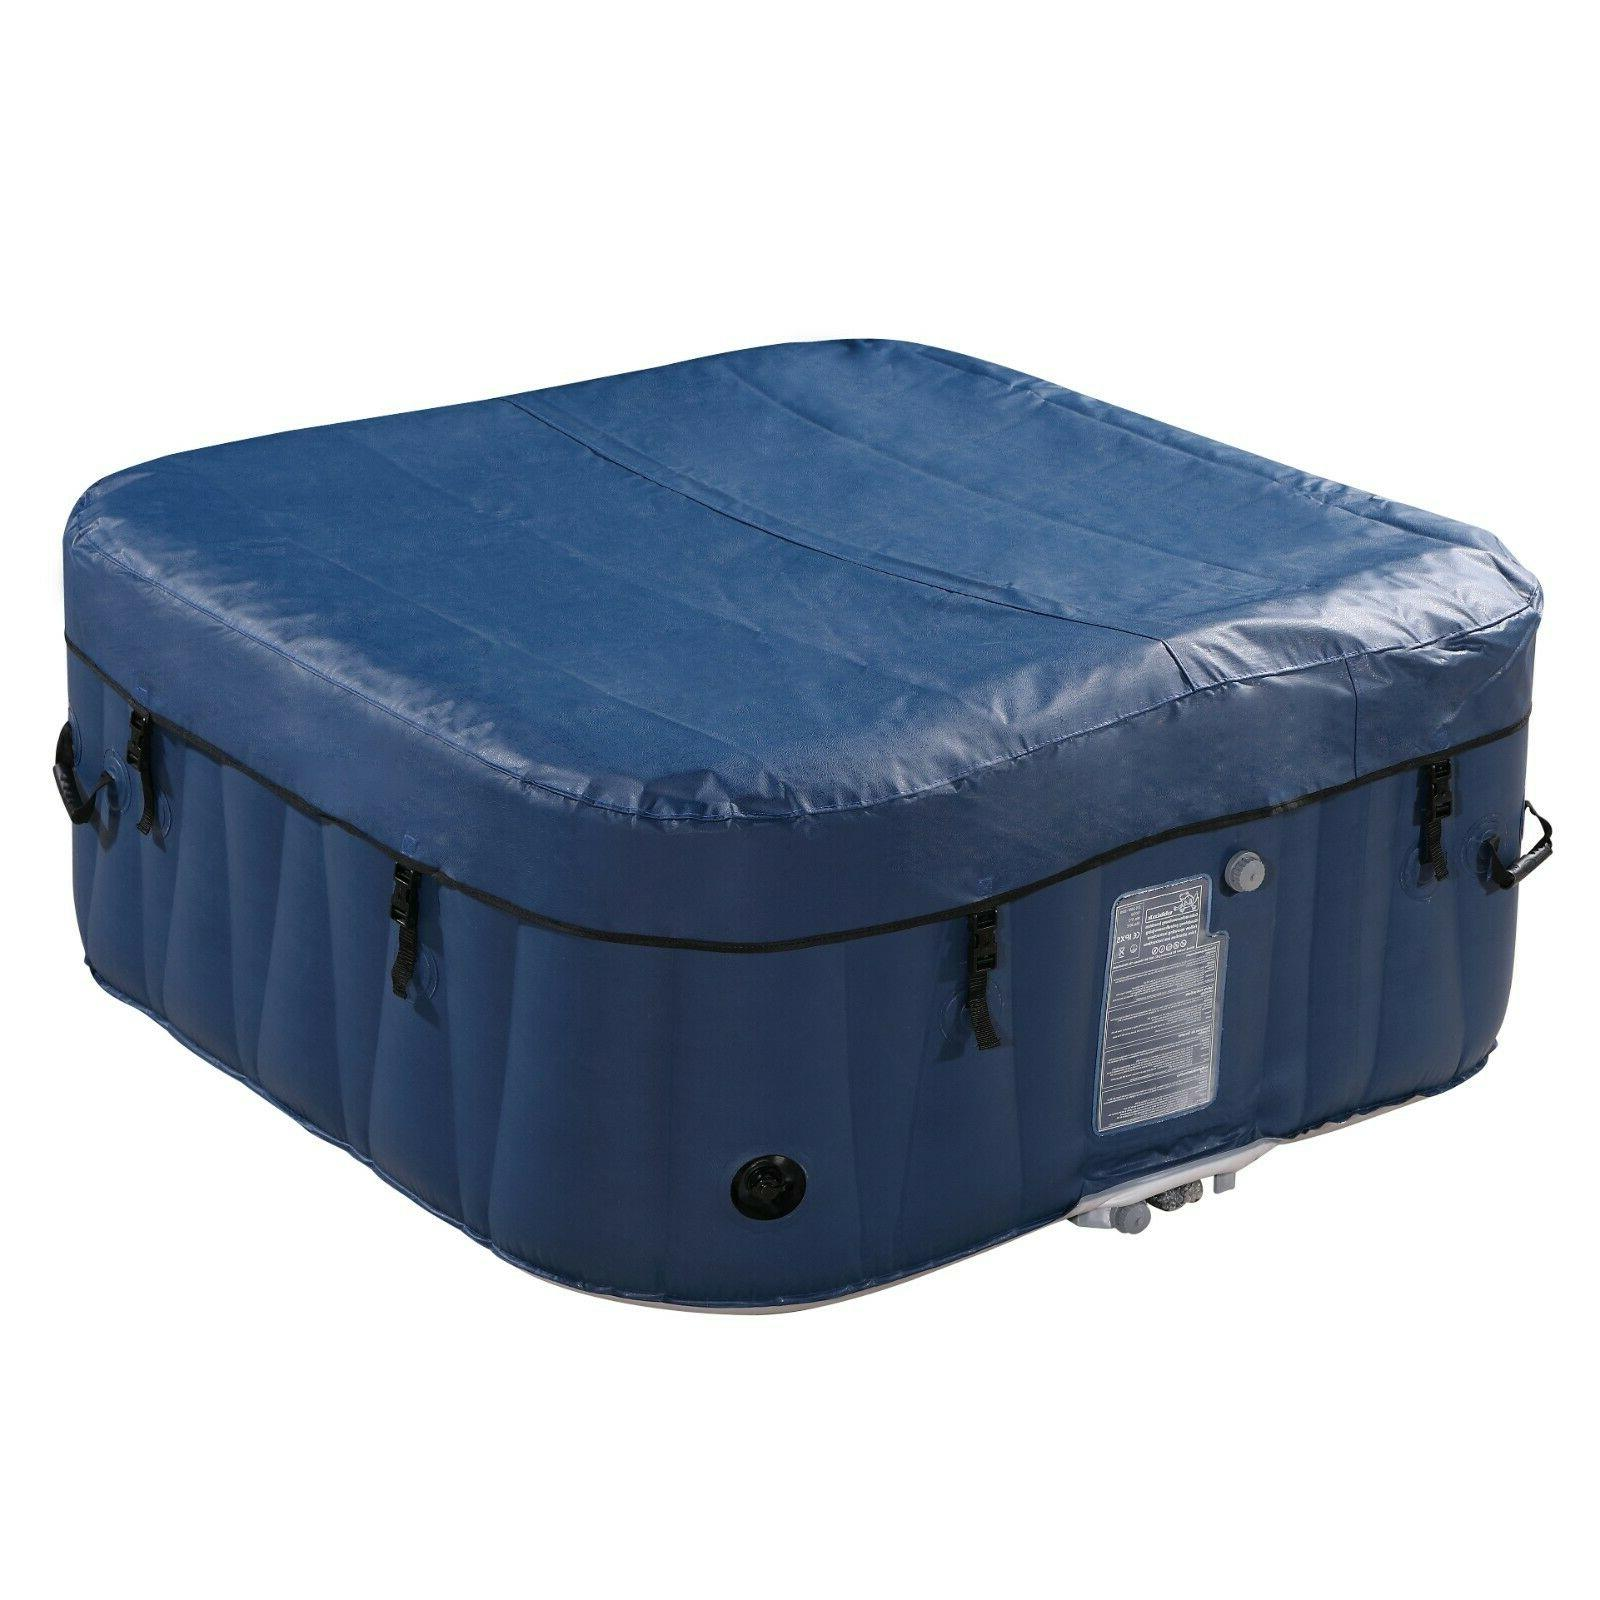 Inflatable Hot Tub 2-4 Person Portable Spa Bubble